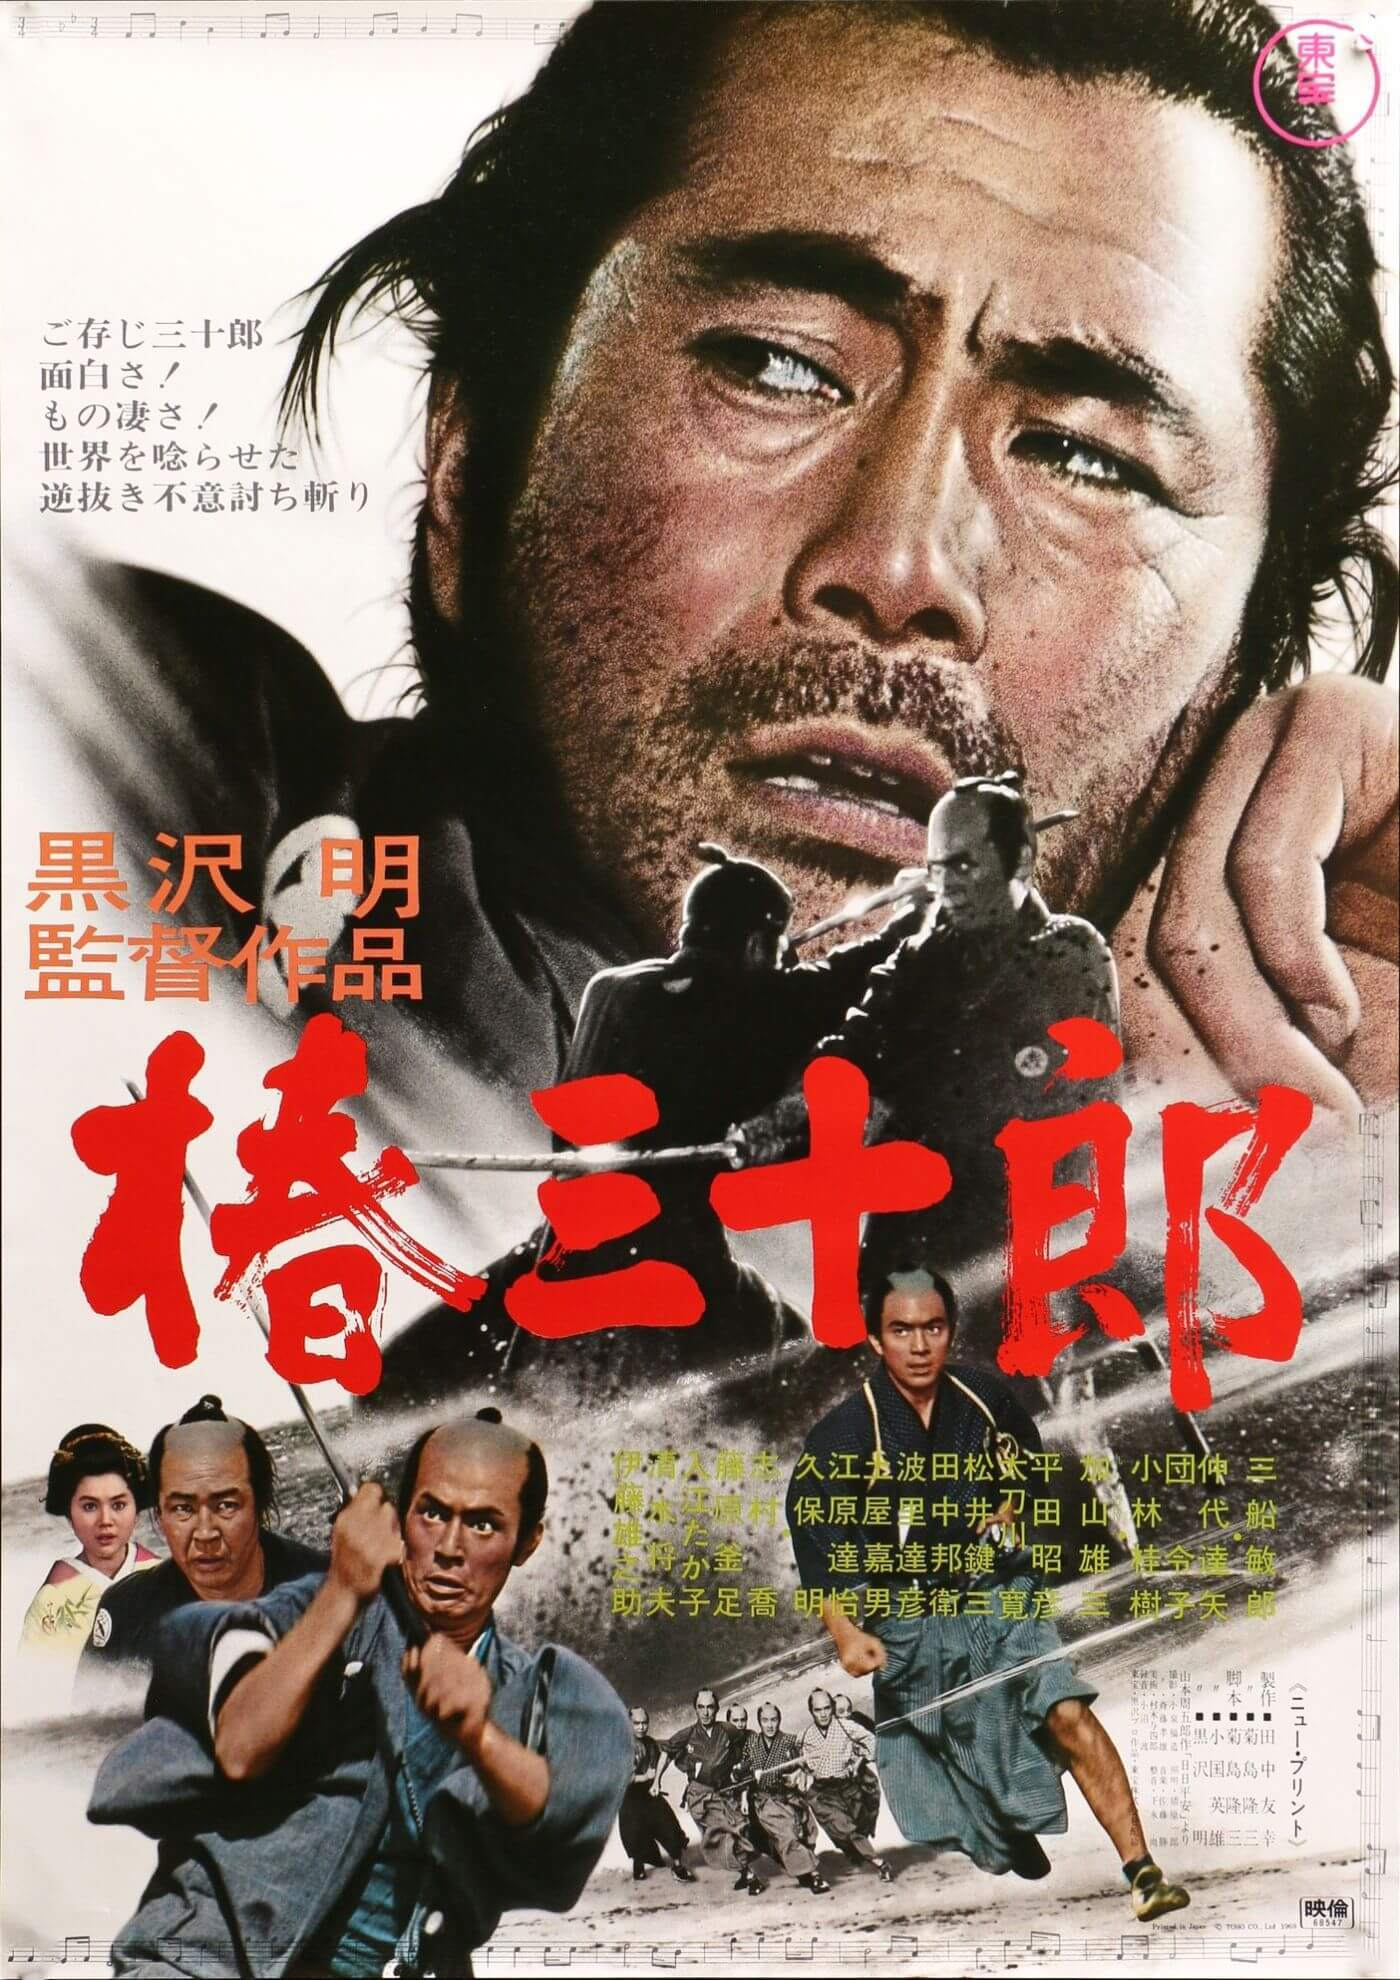 Sanjuro -  Akira Kurosawa 1963 Japanese Cinema Masterpiece - Classic Original Movie Release Poster - Framed Prints